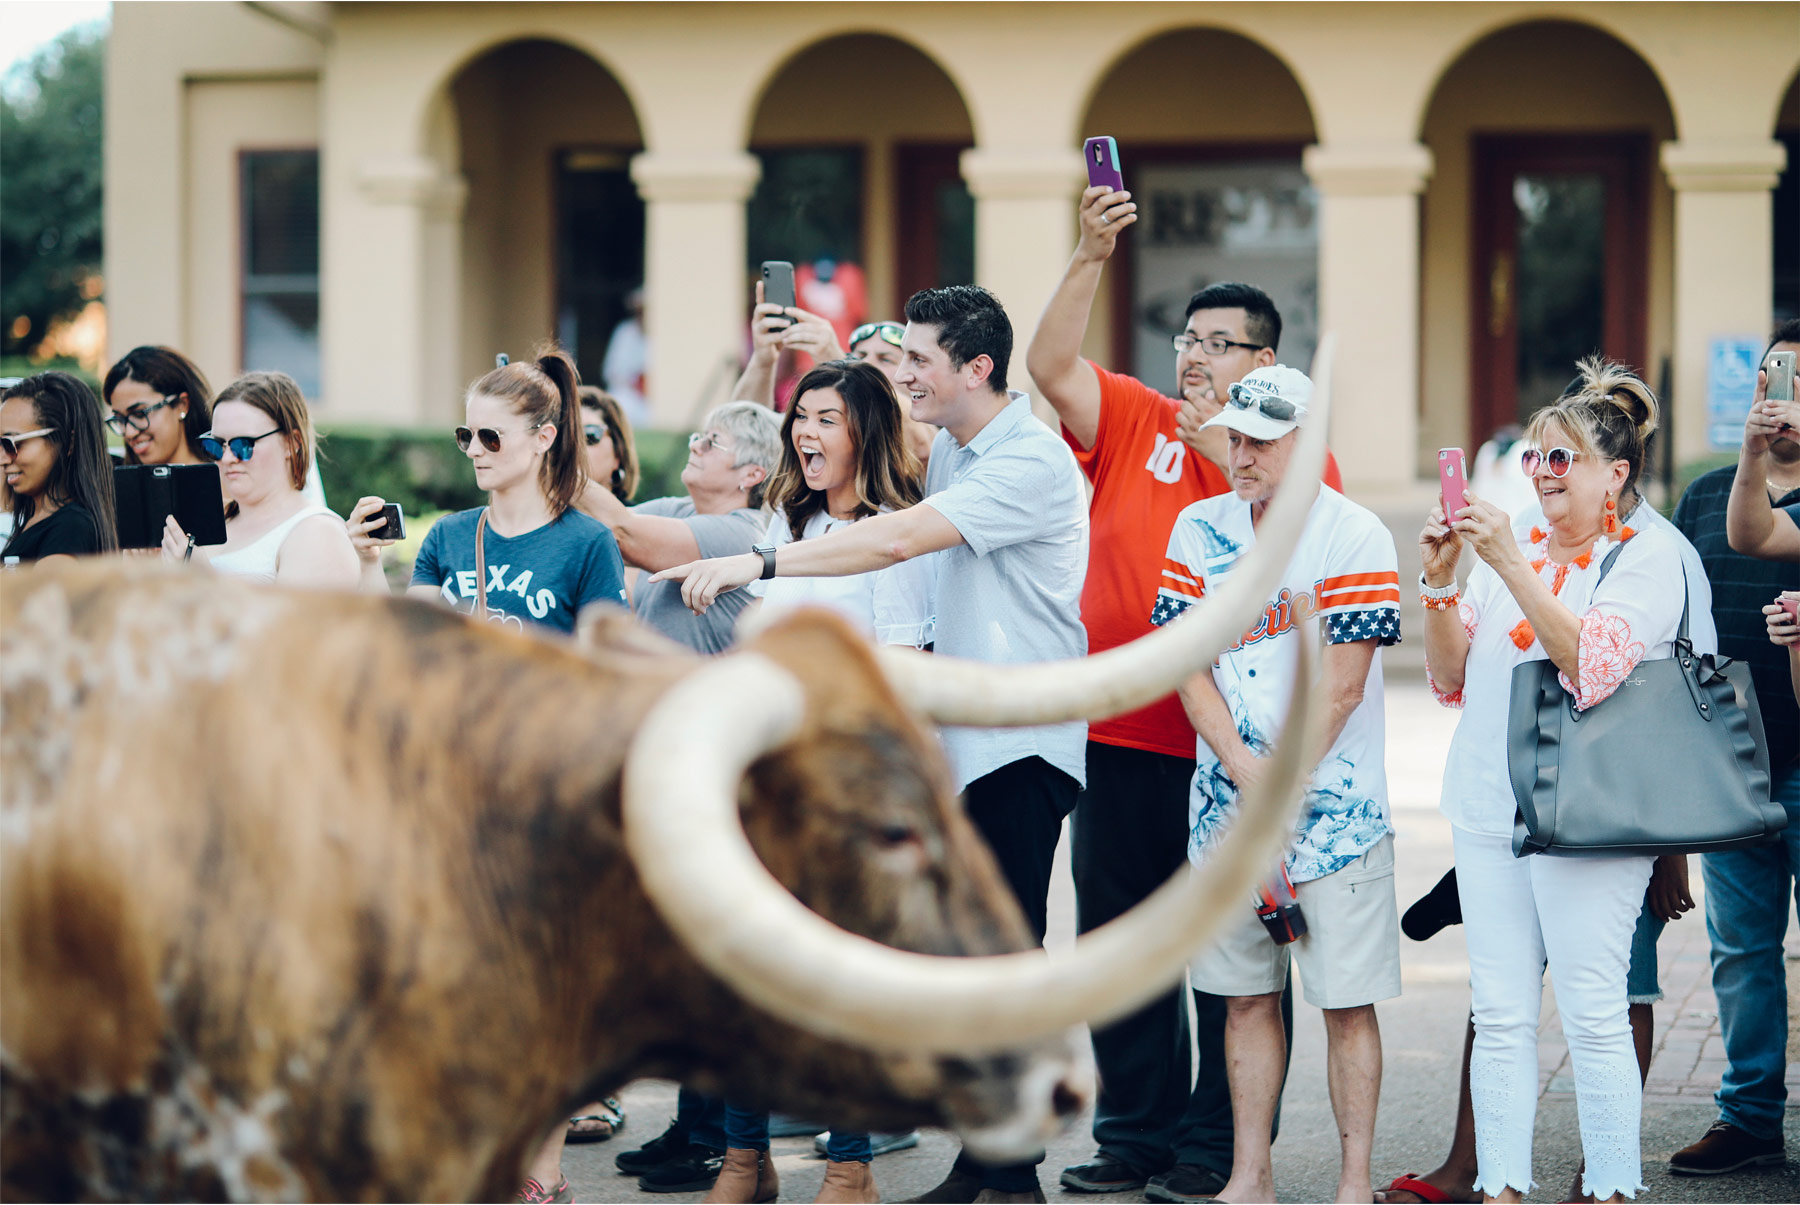 03-Fly-to-Me-Destination-Engagement-Session-Vick-Photography-Fort-Worth-Texas-Longhorn-Cattle-Maggie-and-Matt.jpg